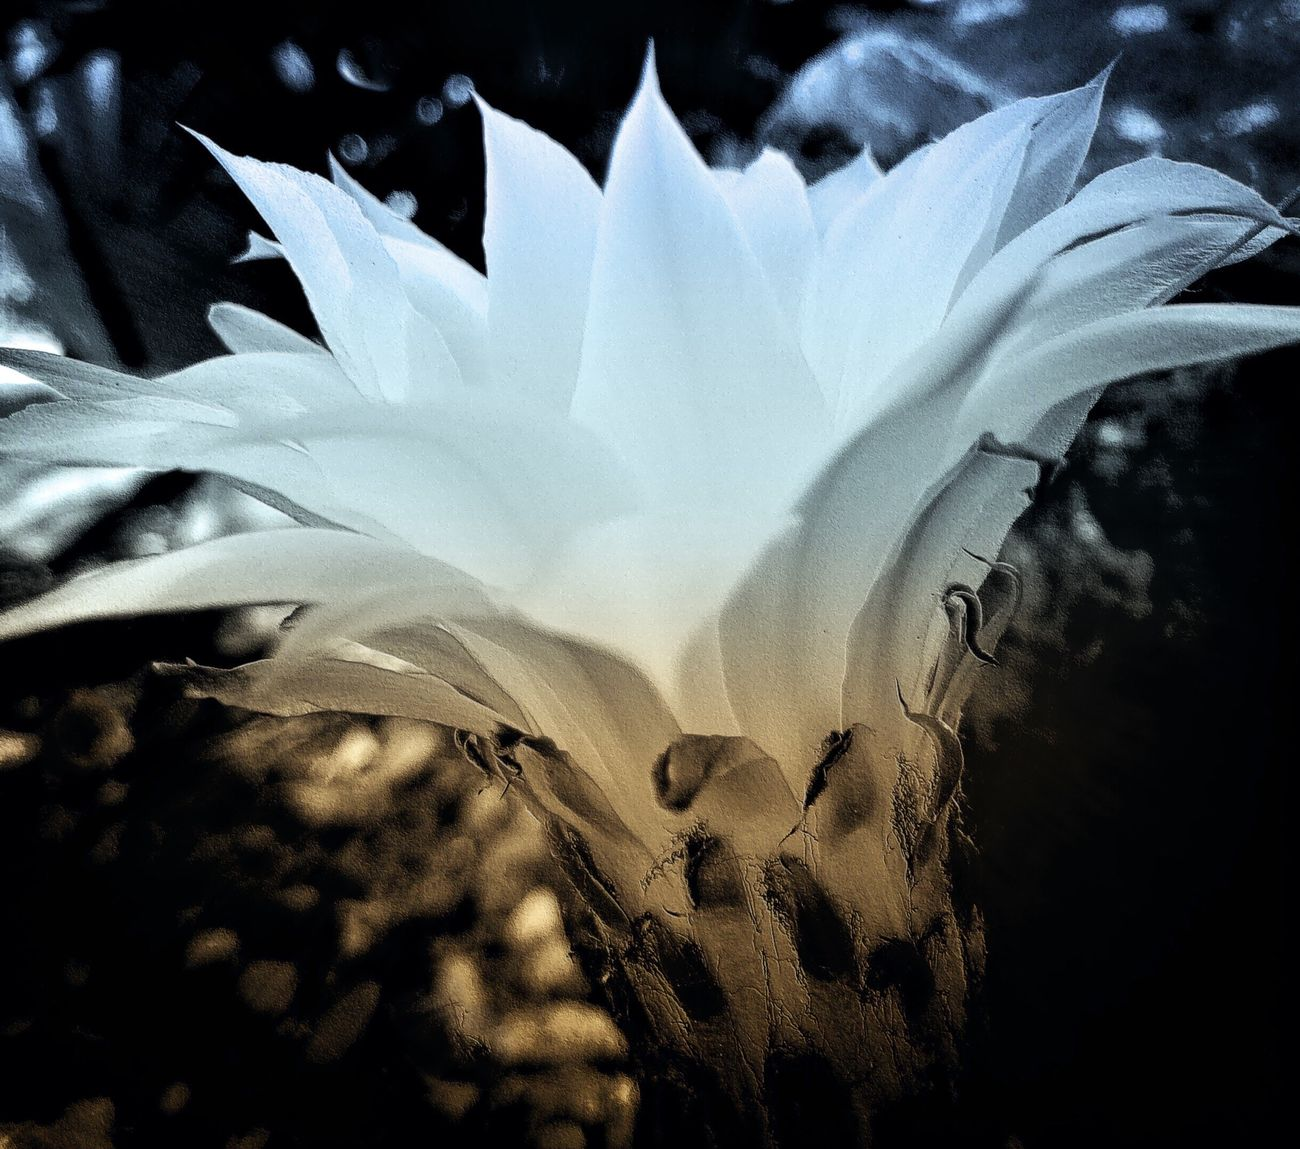 Gift in the Garden. Cactus Flower Phototransformation Digital Expression Mobile Art Flower Art From My Point Of View Cactus Garden, Desert Bloom IPhoneography Gift From The Garden White Flower Sunday Art